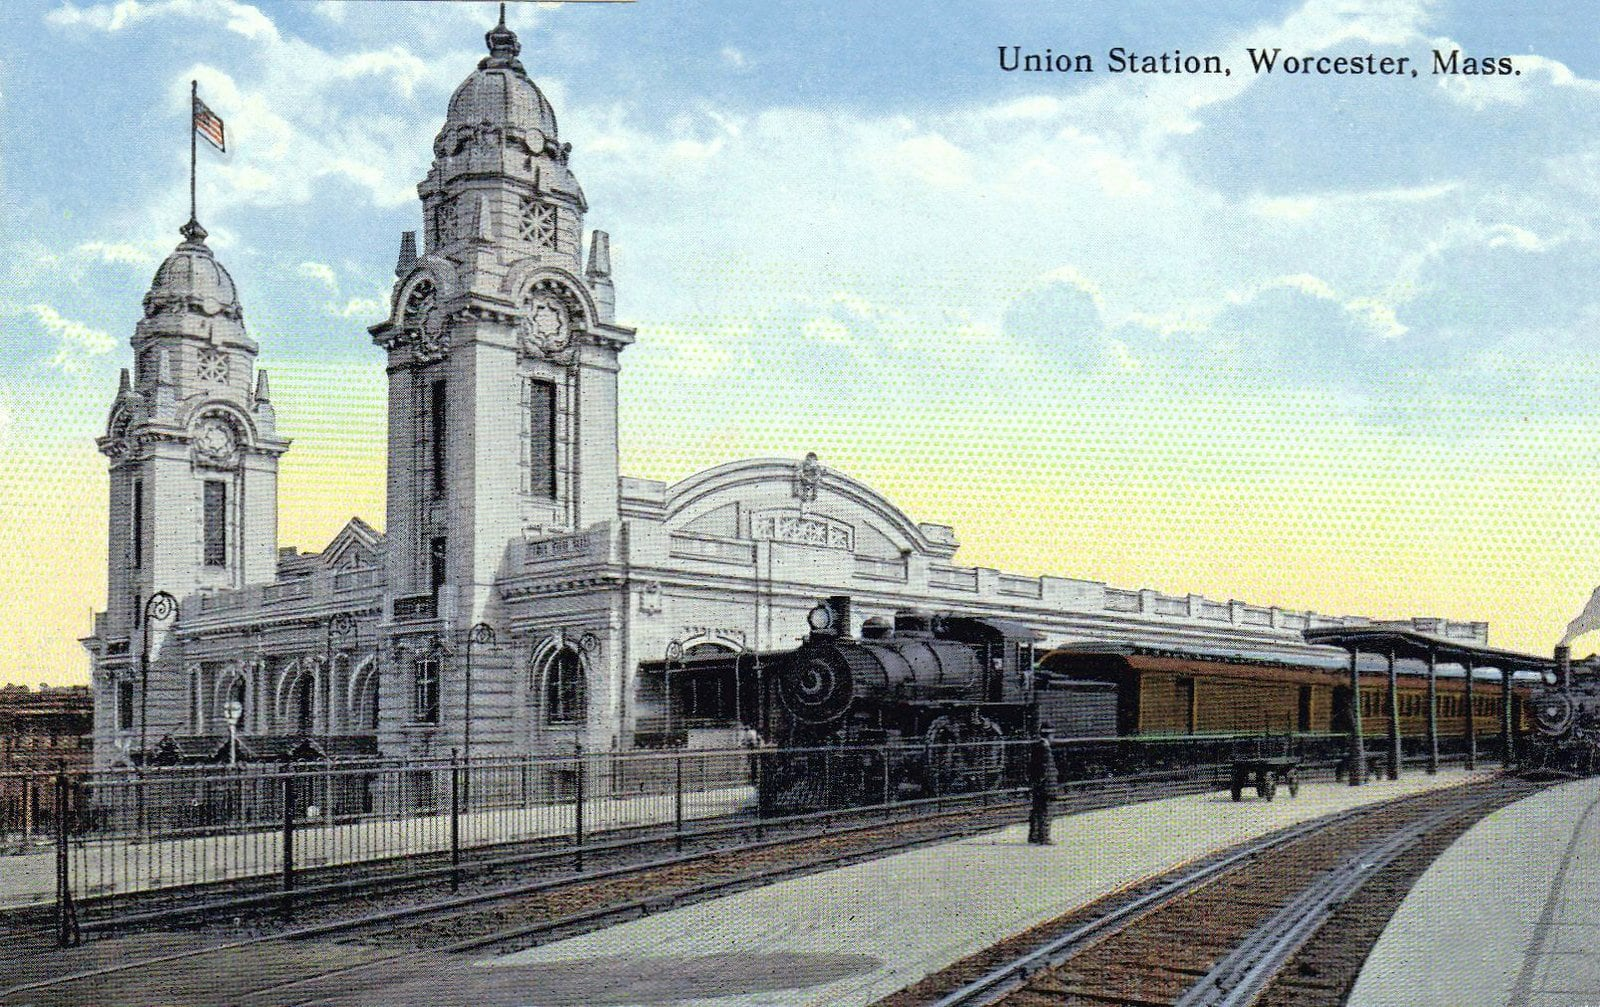 Old Union Station - Train depot in Worcester Mass